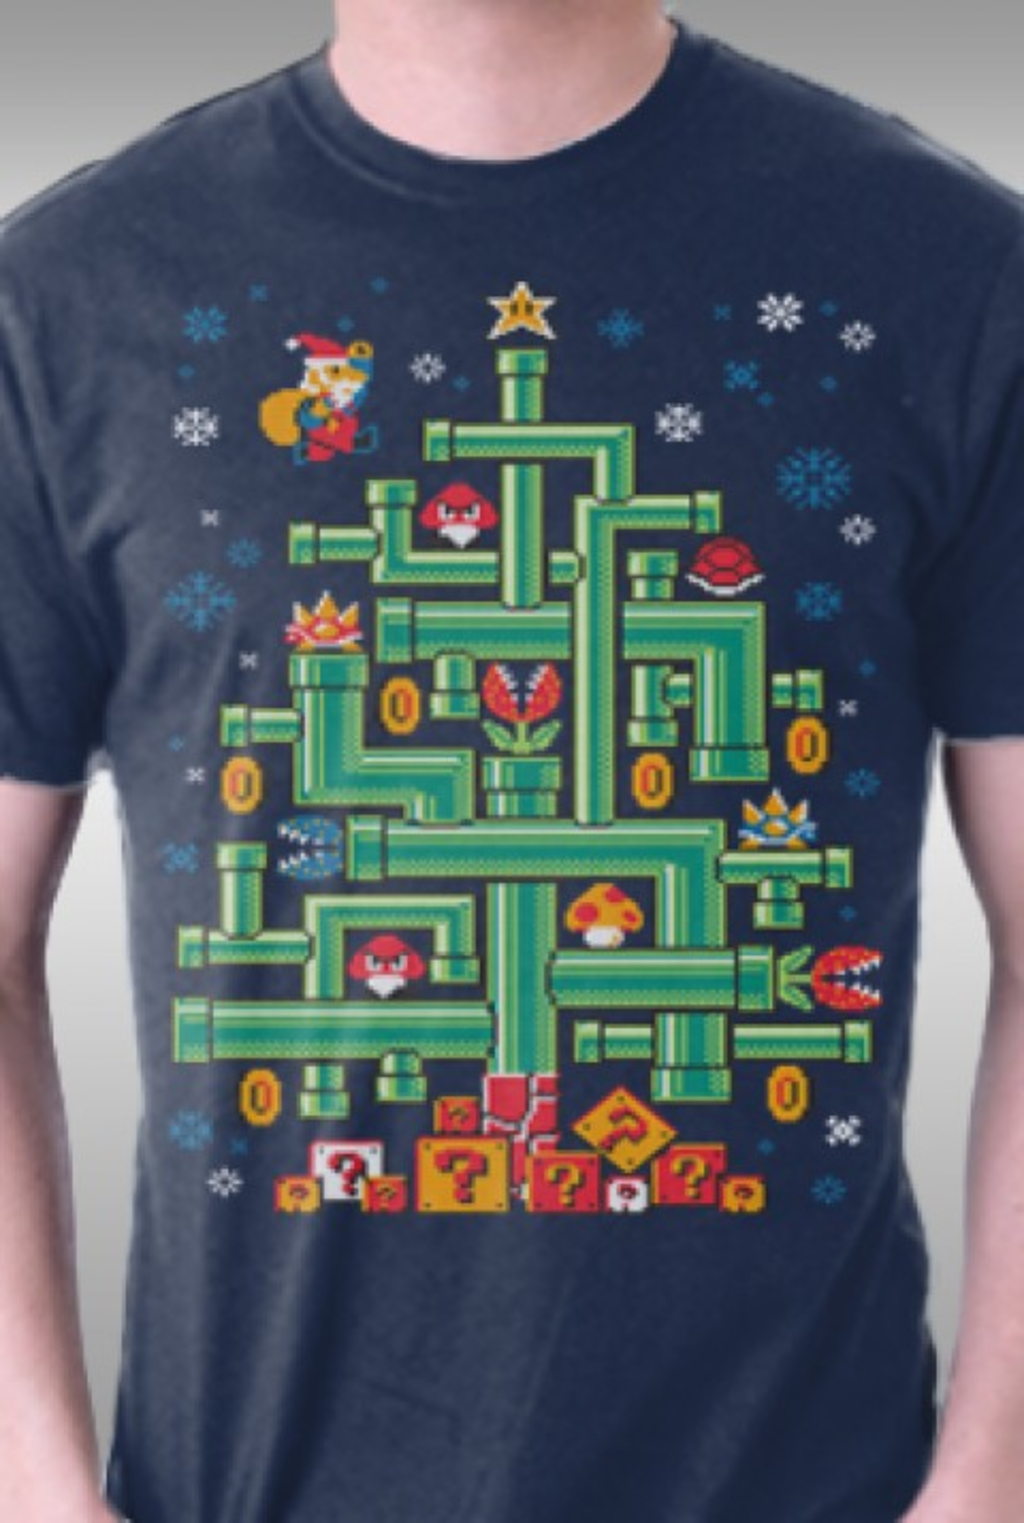 TeeFury: It's a Tree, Mario!